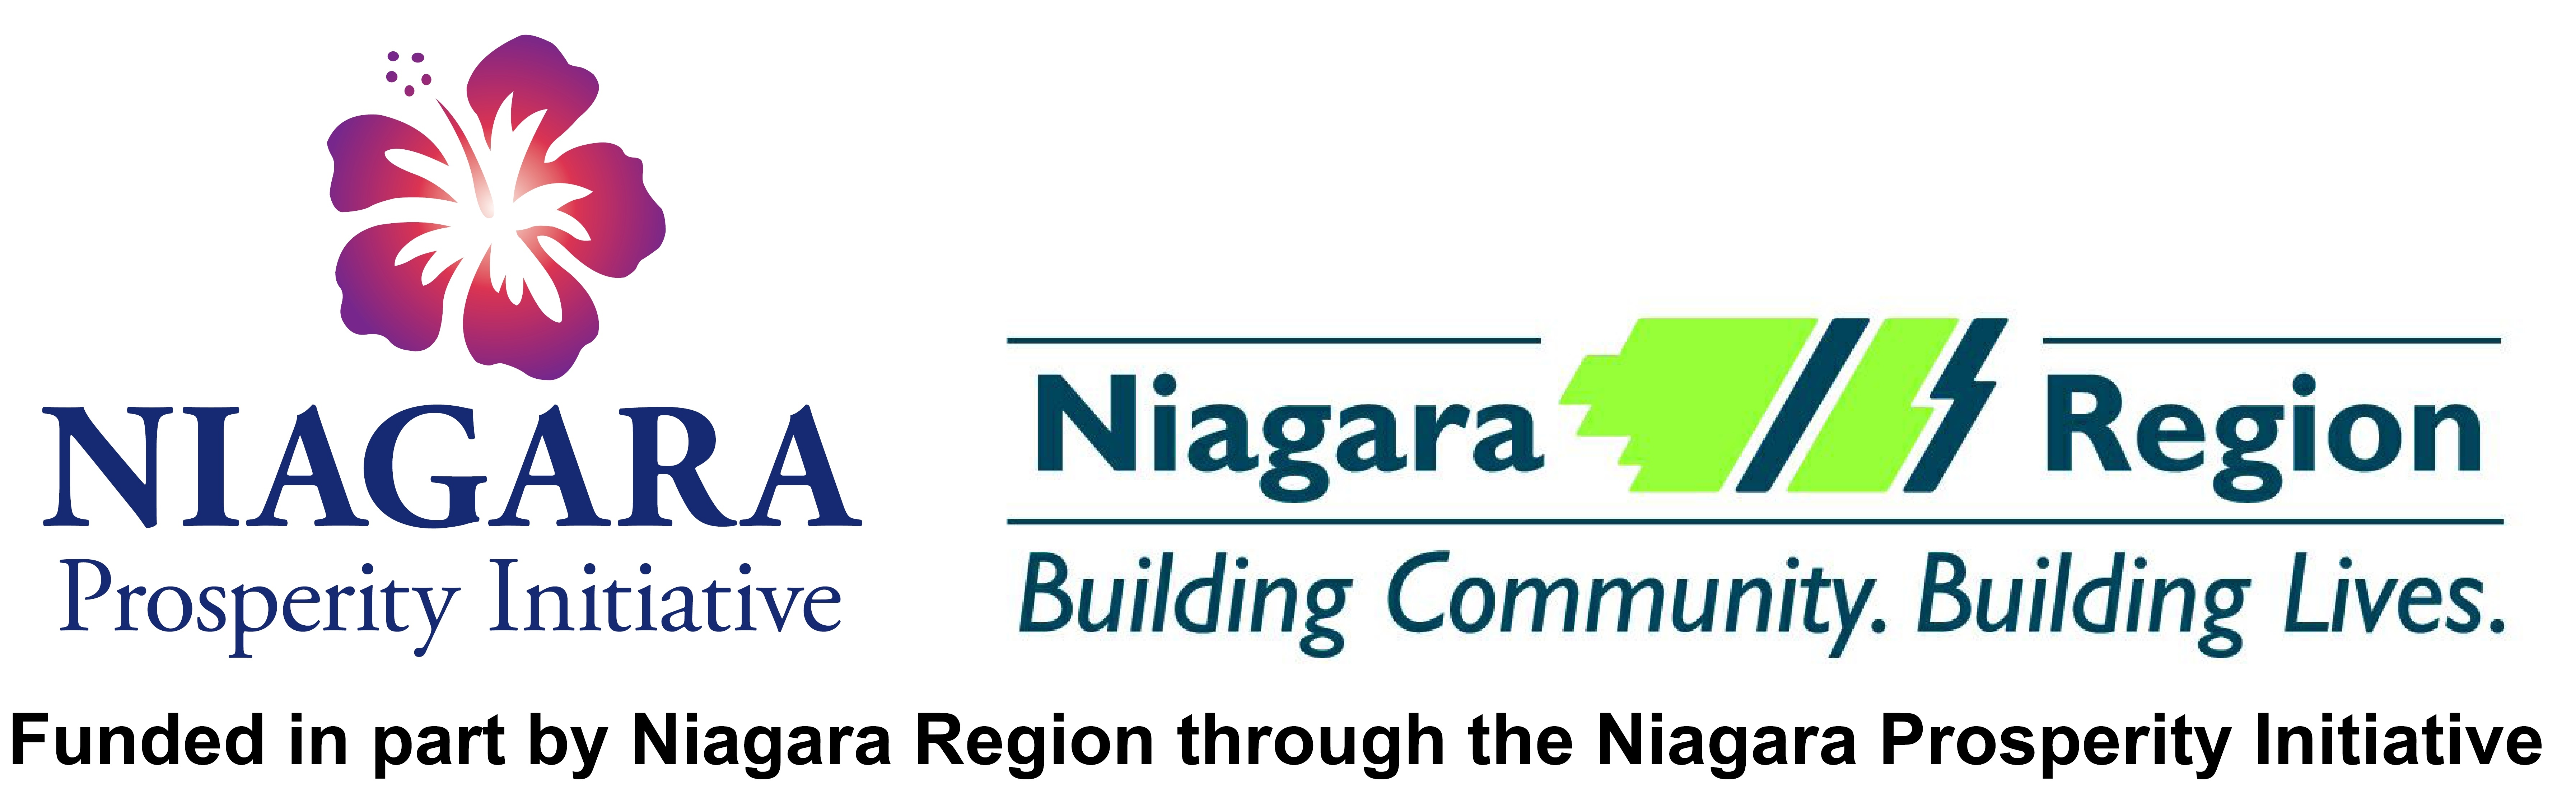 Niagara Prosperity with Niagara Region